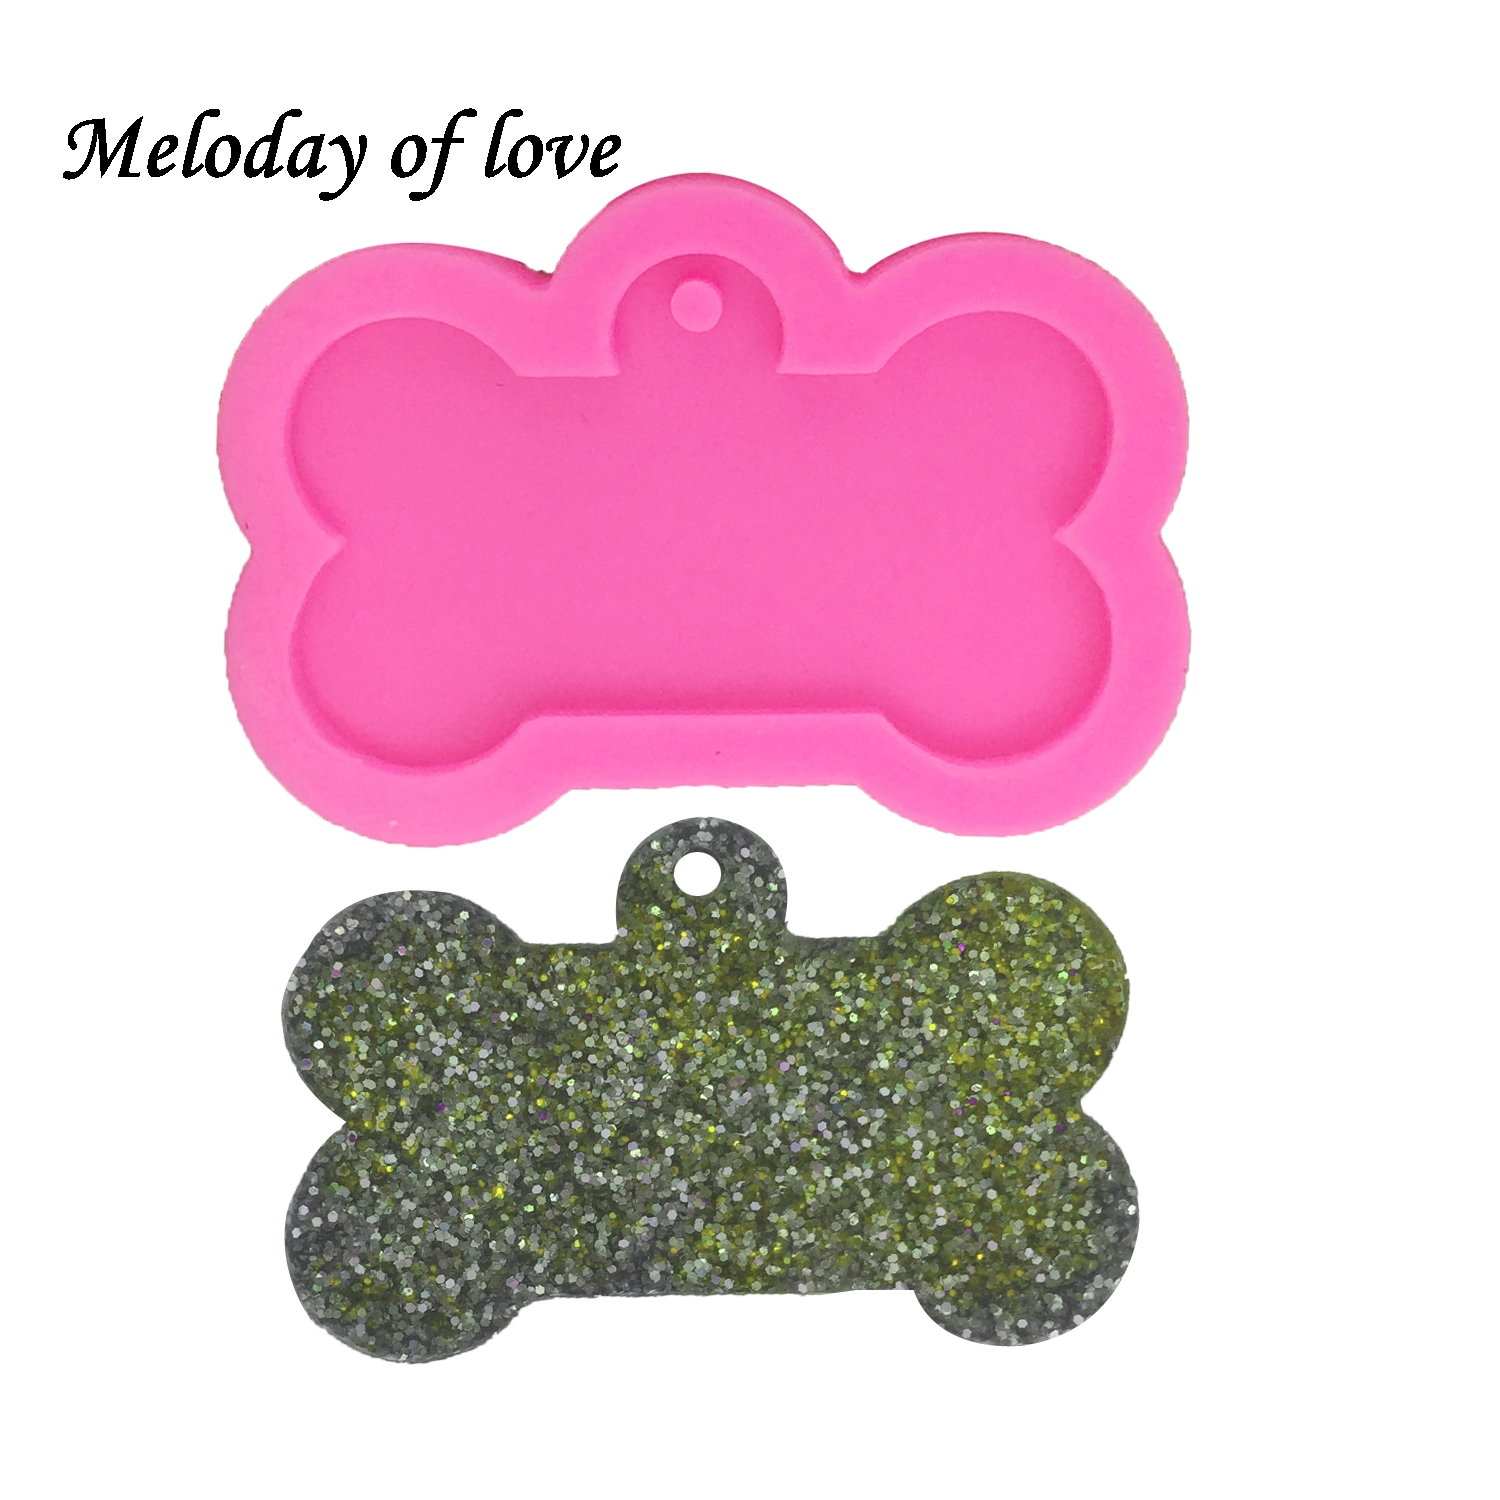 Shiny Dog Bone Shape Key Chain Mold DIY Epoxy Resin Clay Mold Silicone Mold For Keychain Accessories Pendant DY0061